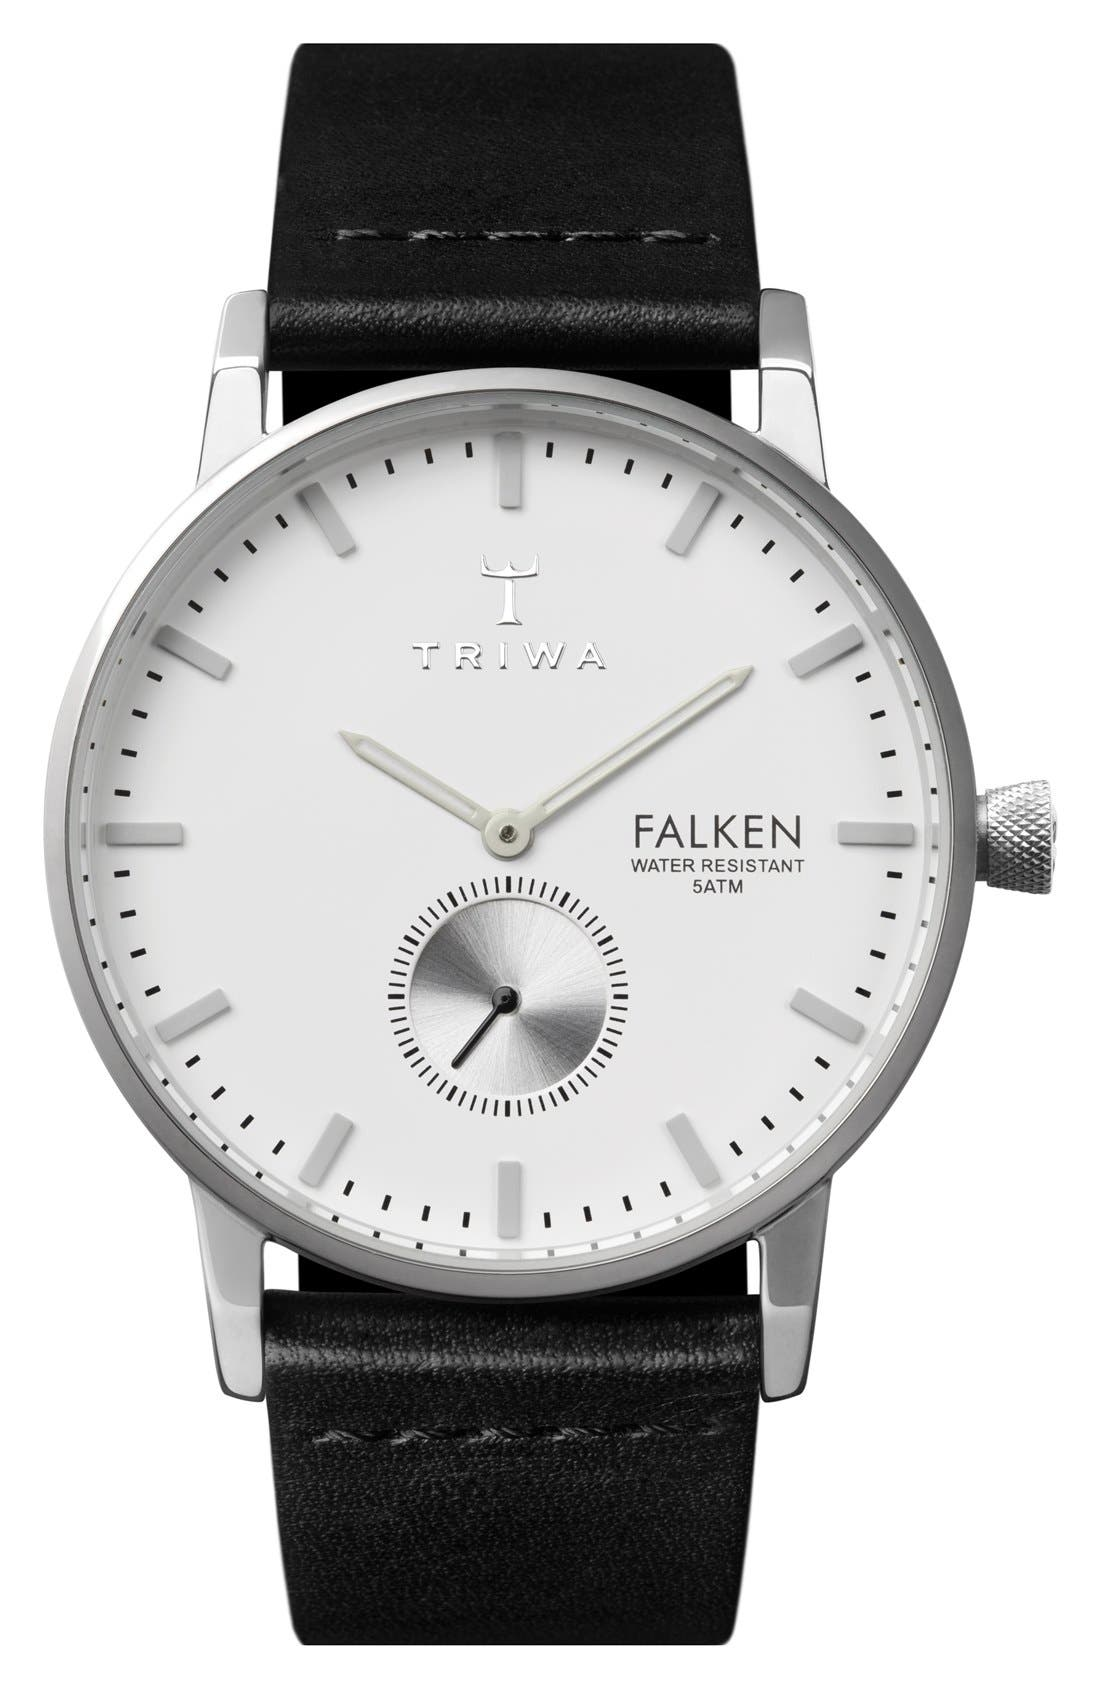 TRIWA Falken Organic Leather Strap Watch, 38mm